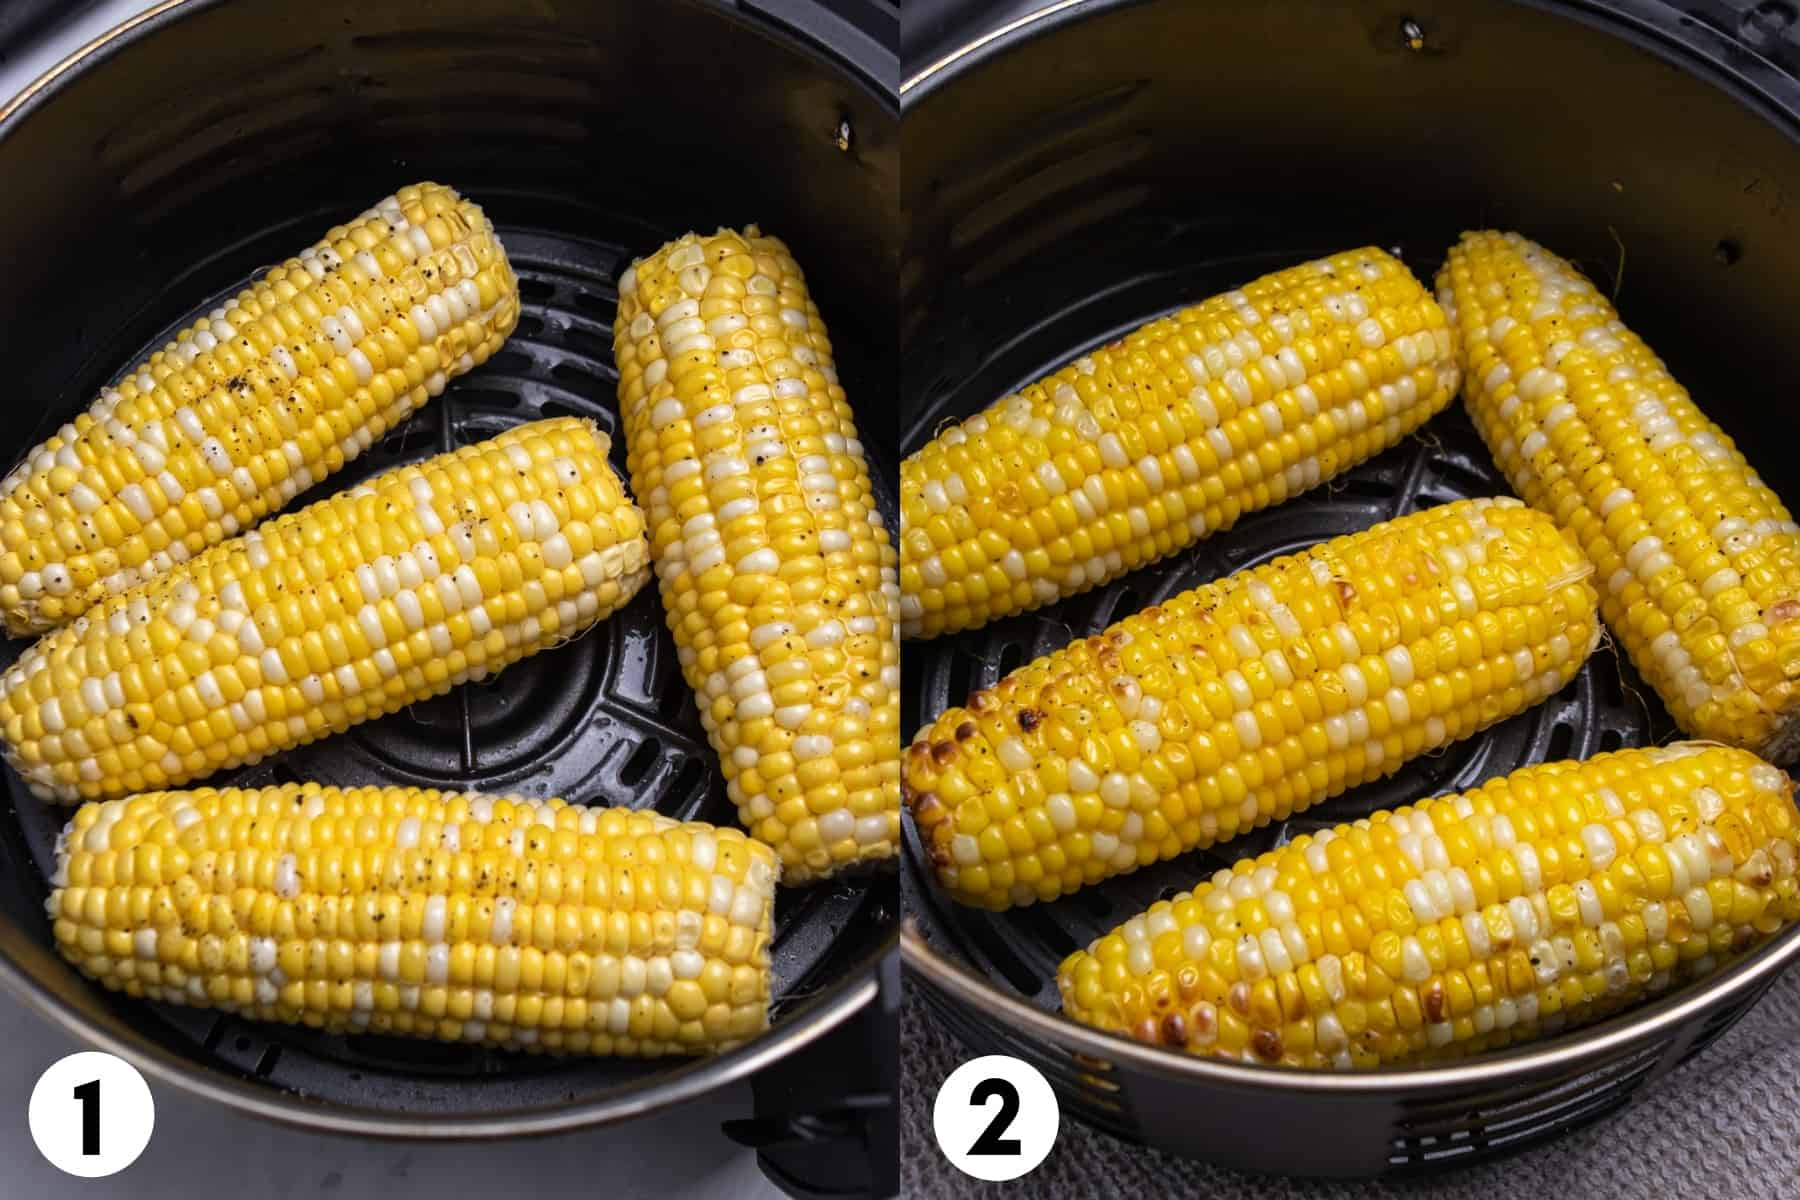 Corn in air fryer basket before and then after air frying.